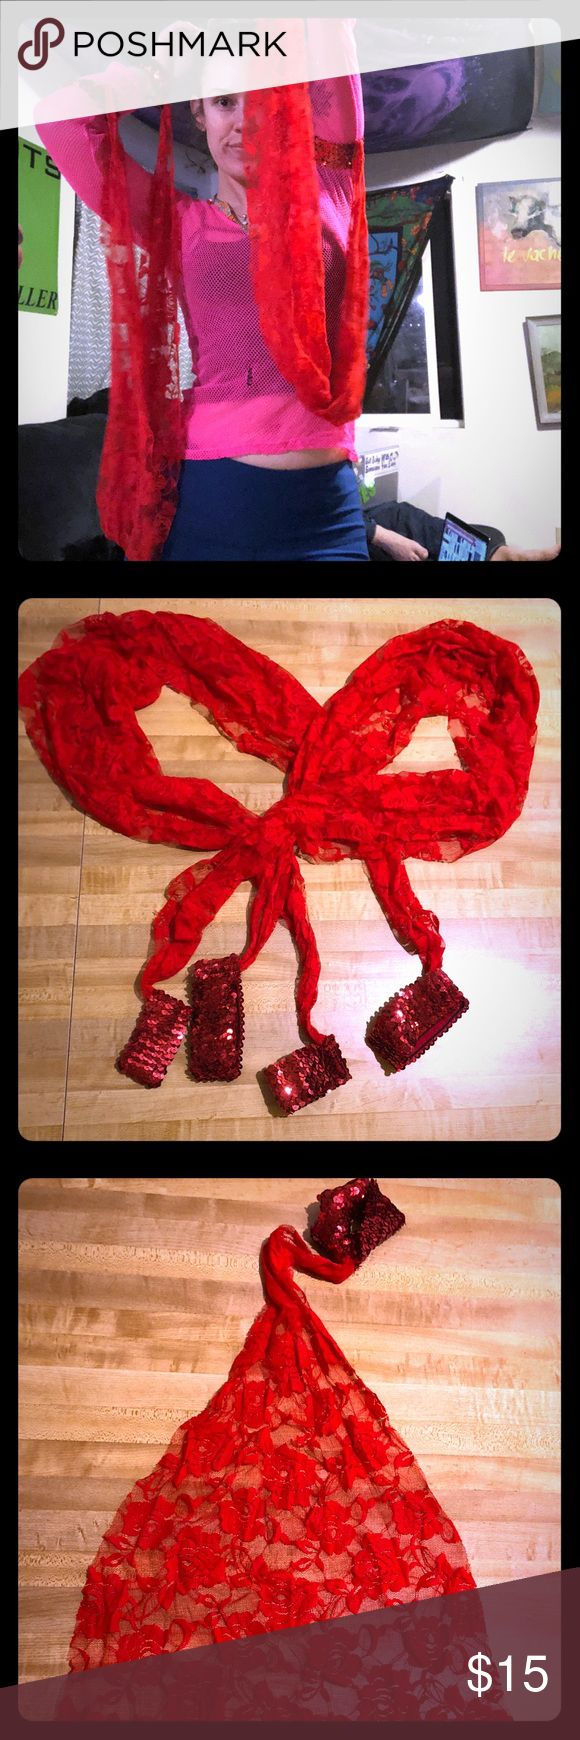 Sexy dance rave lace sequin arm drapes wings flags Two gorgeous large red dance drapes, with two sequin arm bands on each to attach to arms.  Looks like wings when you dance!  Originally purchased from Dolls Kill. Very fun hippy hippie party rave raver dance dancer accessory, wonderful for music festivals.  Brand new never used, new without tags as it never came with them!  Offers always accepted. Accessories